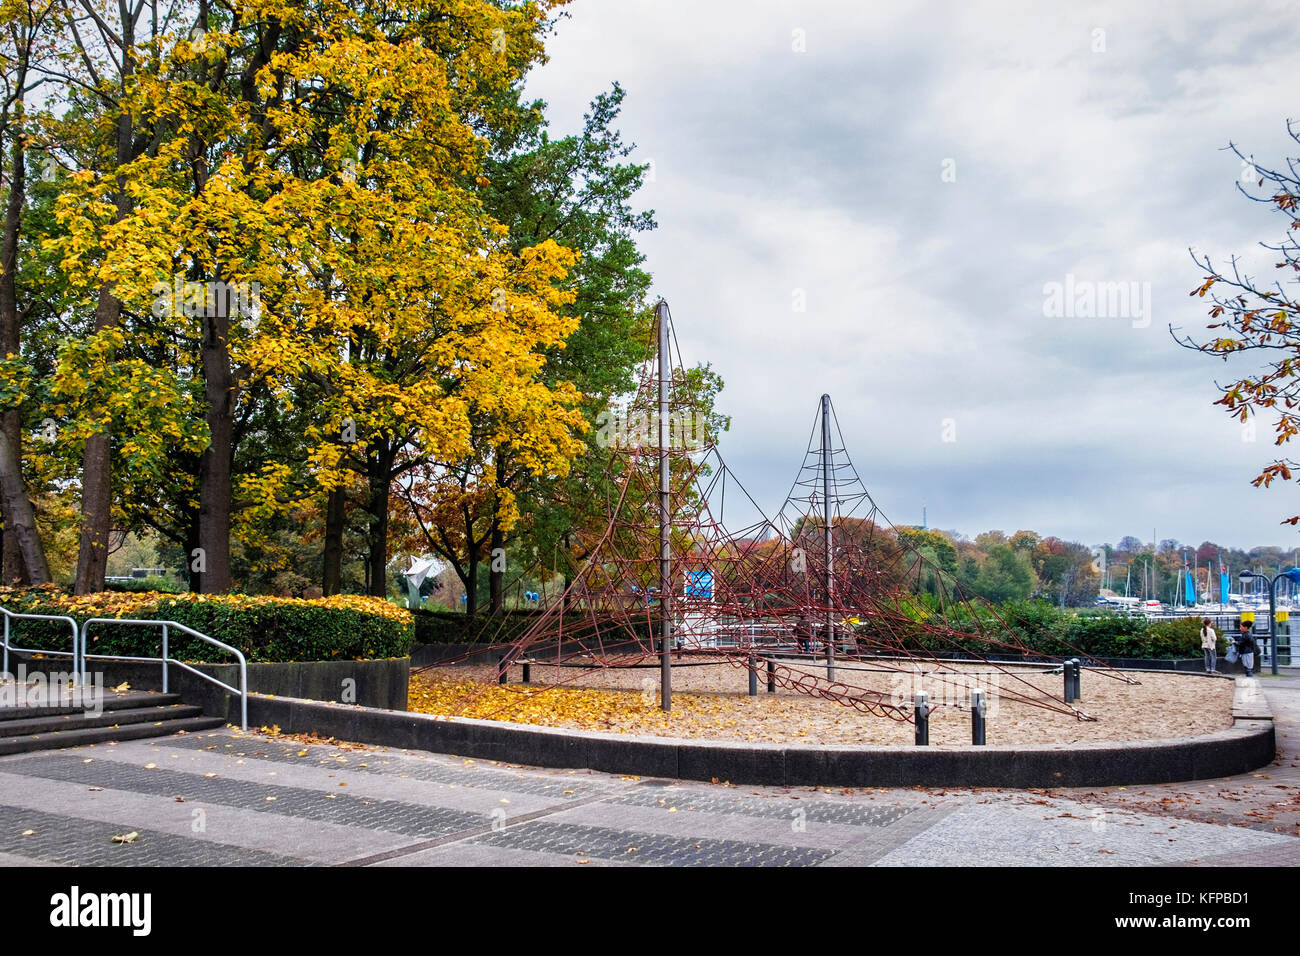 Berlin ,Wannsee harbour .Children's climbing frame and playground is deserted in Autumn - Stock Image